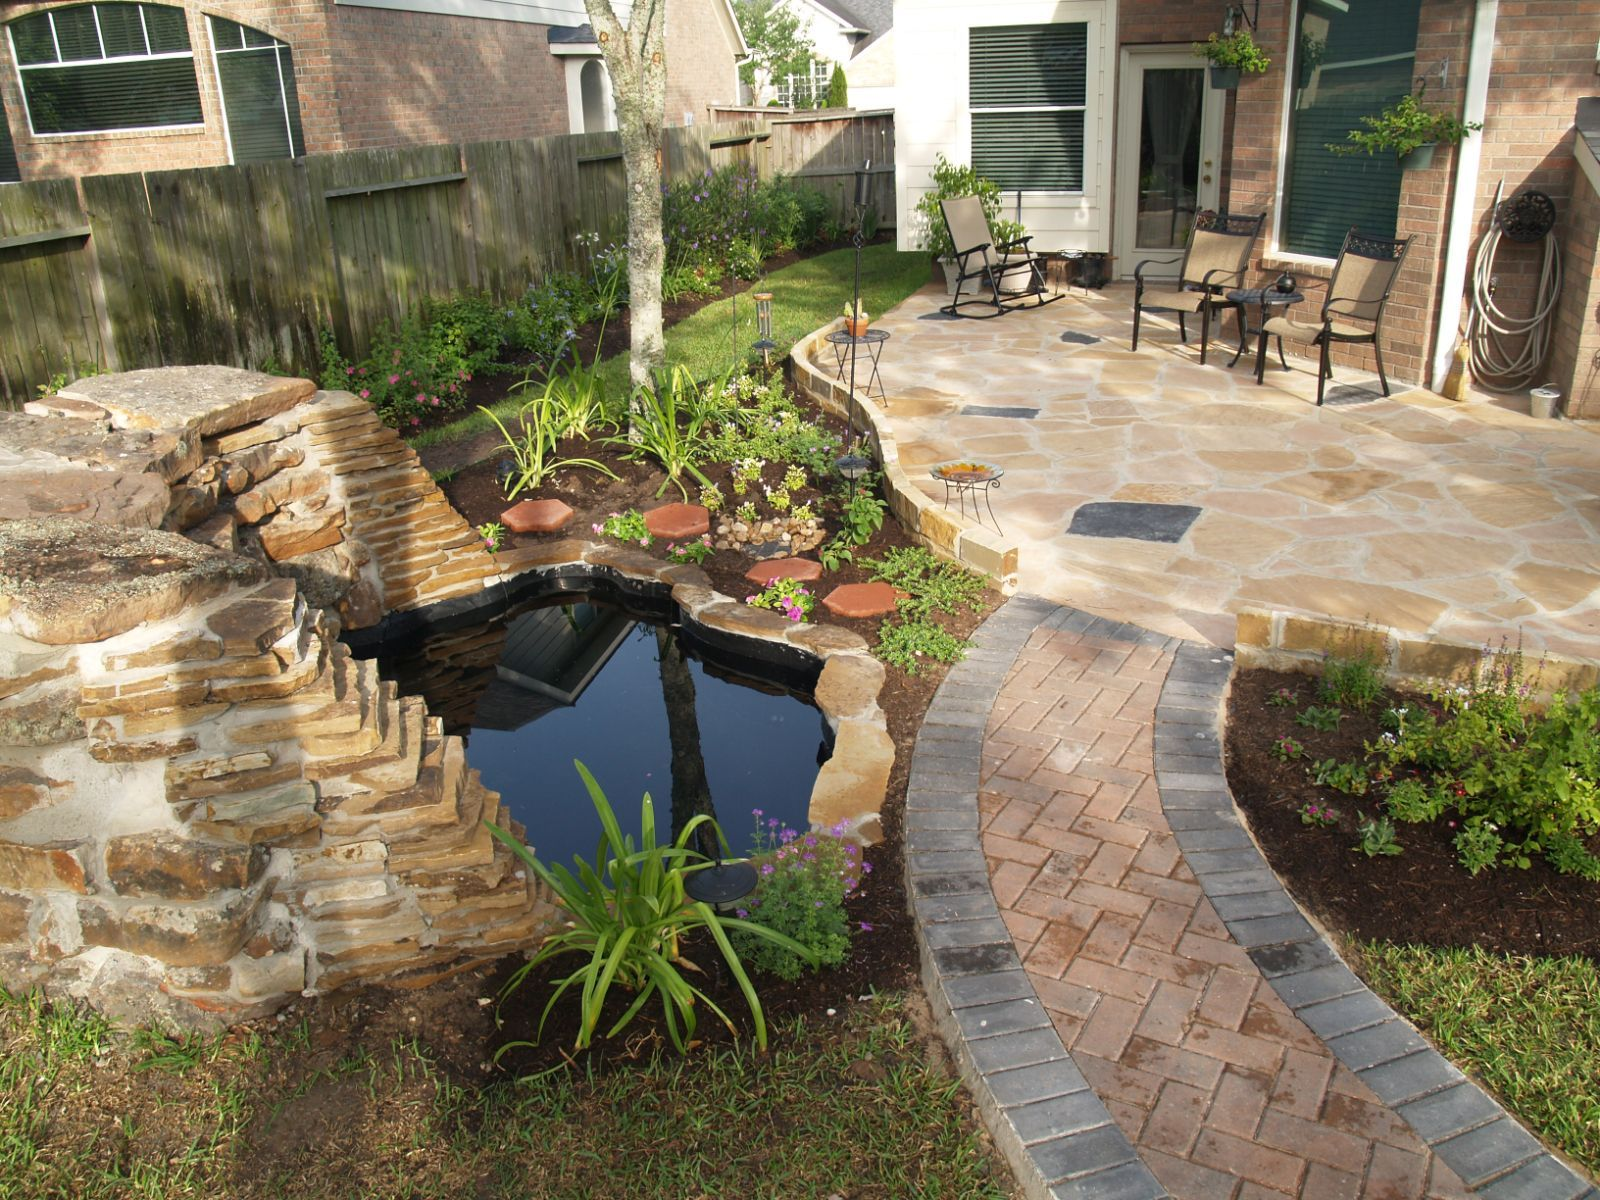 inexpensive backyard ideas of the best backyard landscaping ideas on a budget - Backyard Landscape Design Ideas